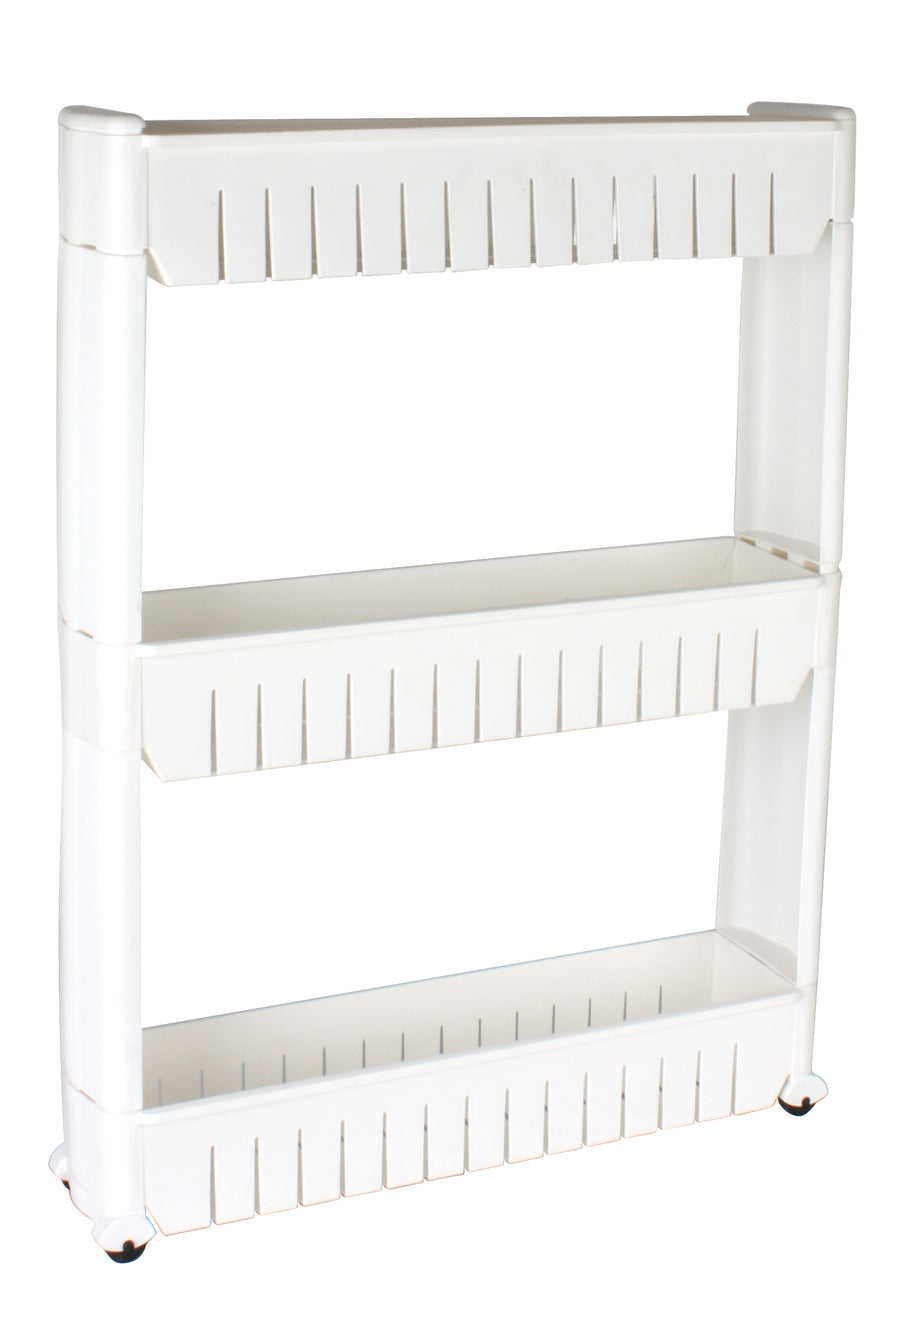 3 Layers with Wheels Storage Rack (White)